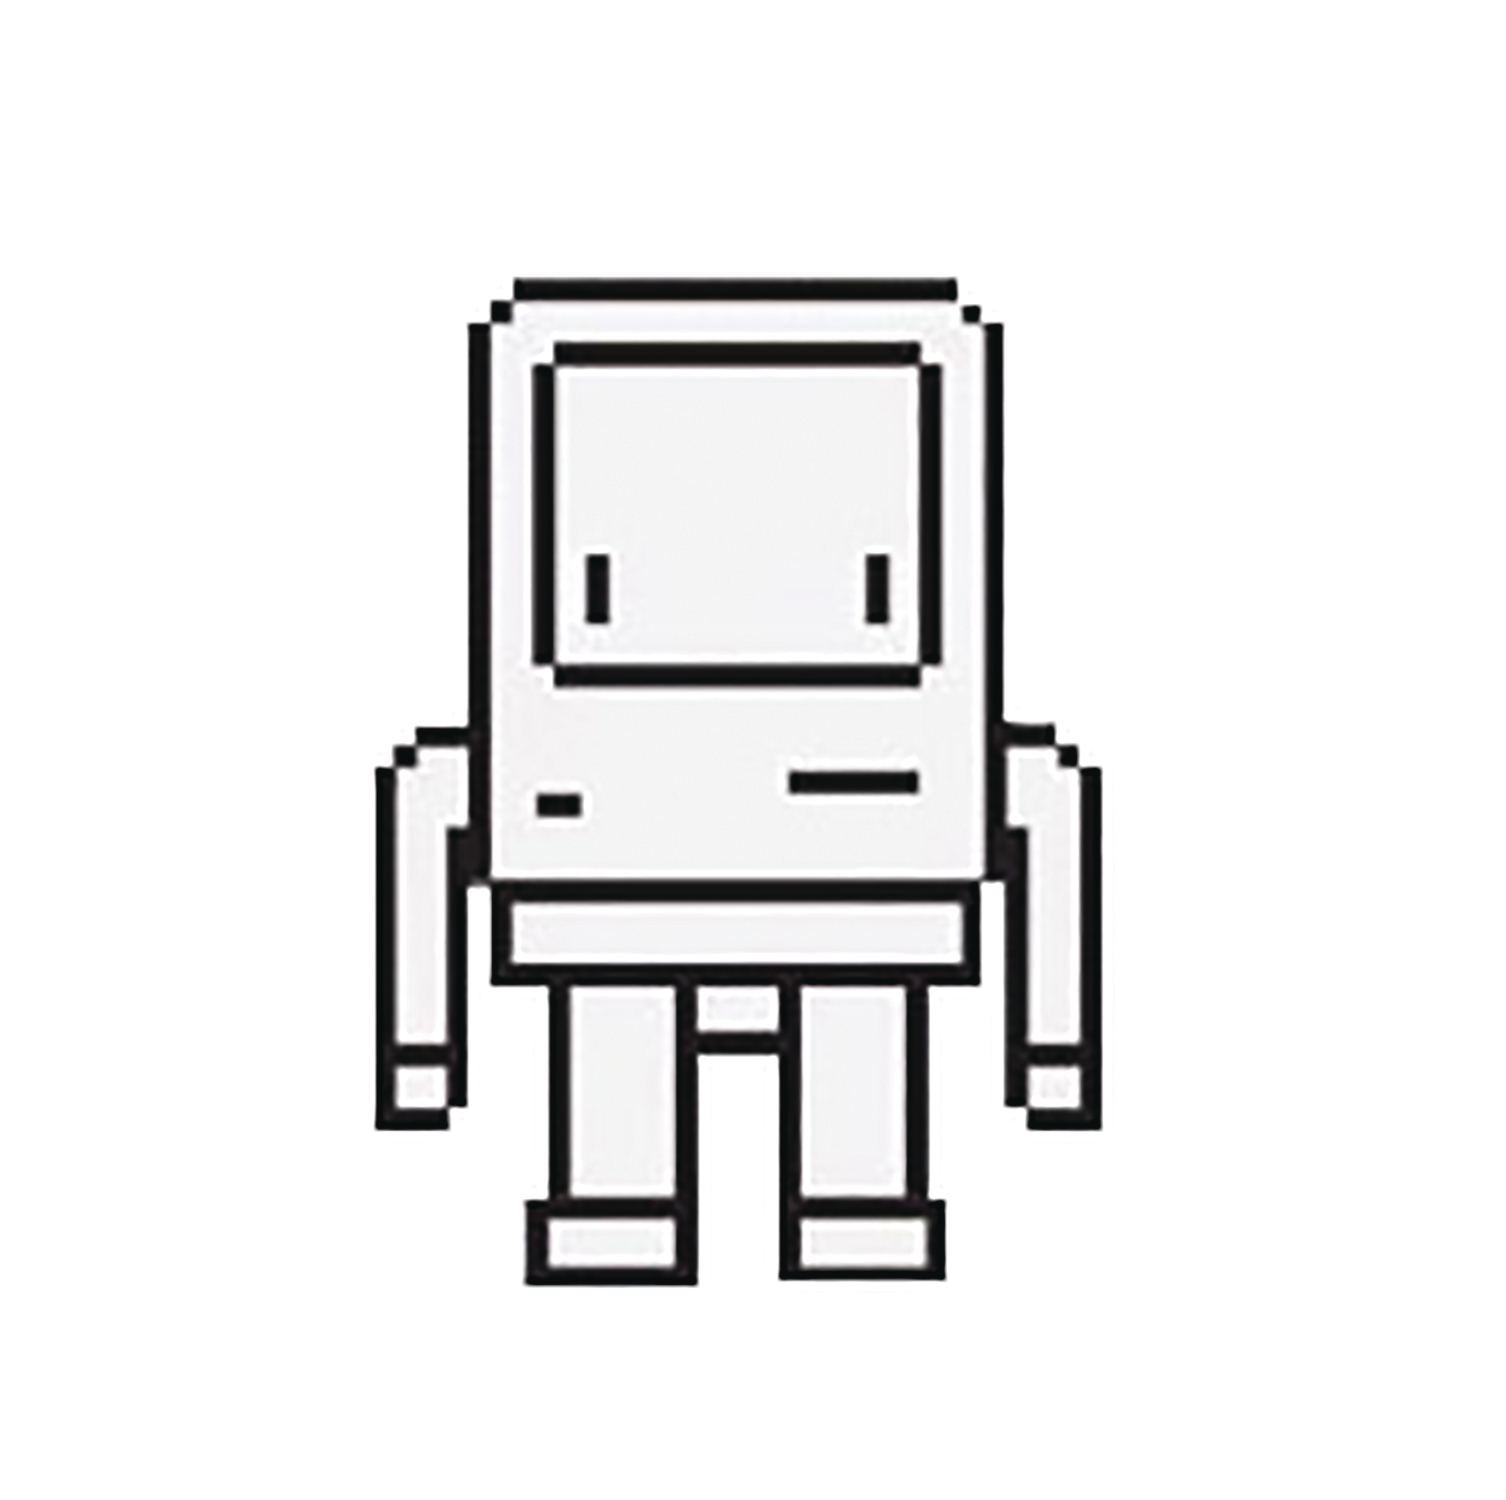 CLASSICBOT PIXEL PIN